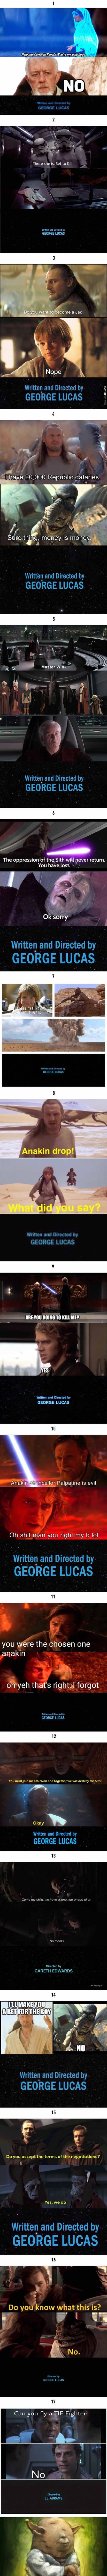 How Star Wars should be ended according to these 17 fans logics